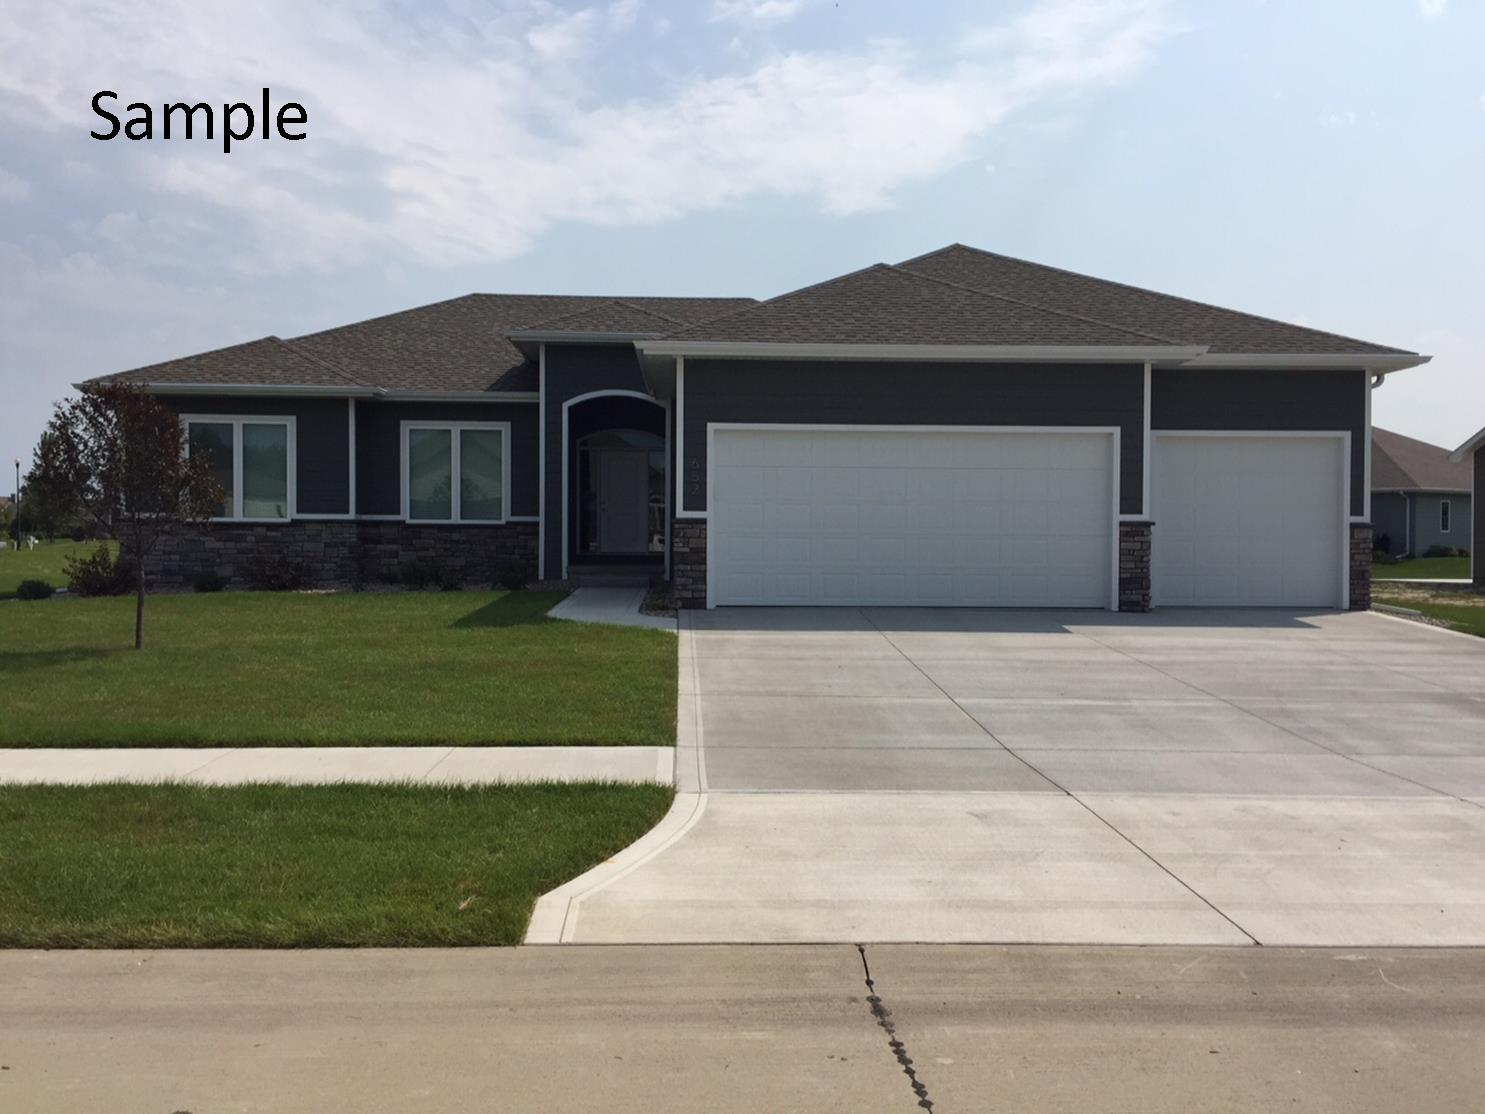 6591 Palm Valley, Sioux City, Iowa 51106